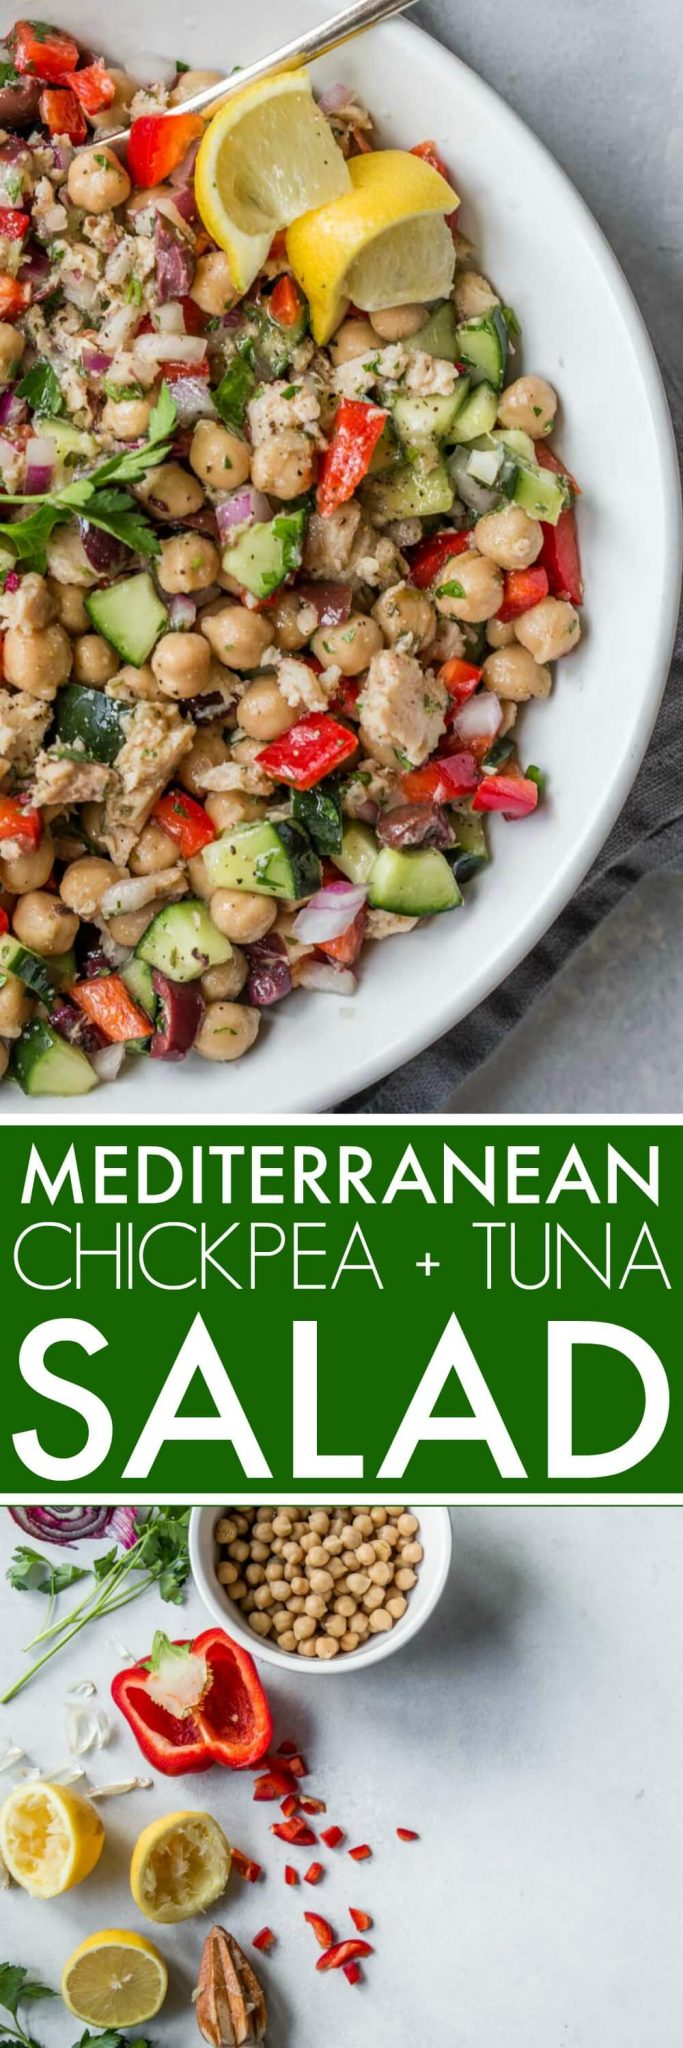 This Mediterranean Chickpea & Tuna Salad is the perfect dish for when you're trying to eat lighter but still want a delicious meal. #salad #tunasalad #chickpeasalad #mediterraneansalad #healthylunch #chickpea #tuna